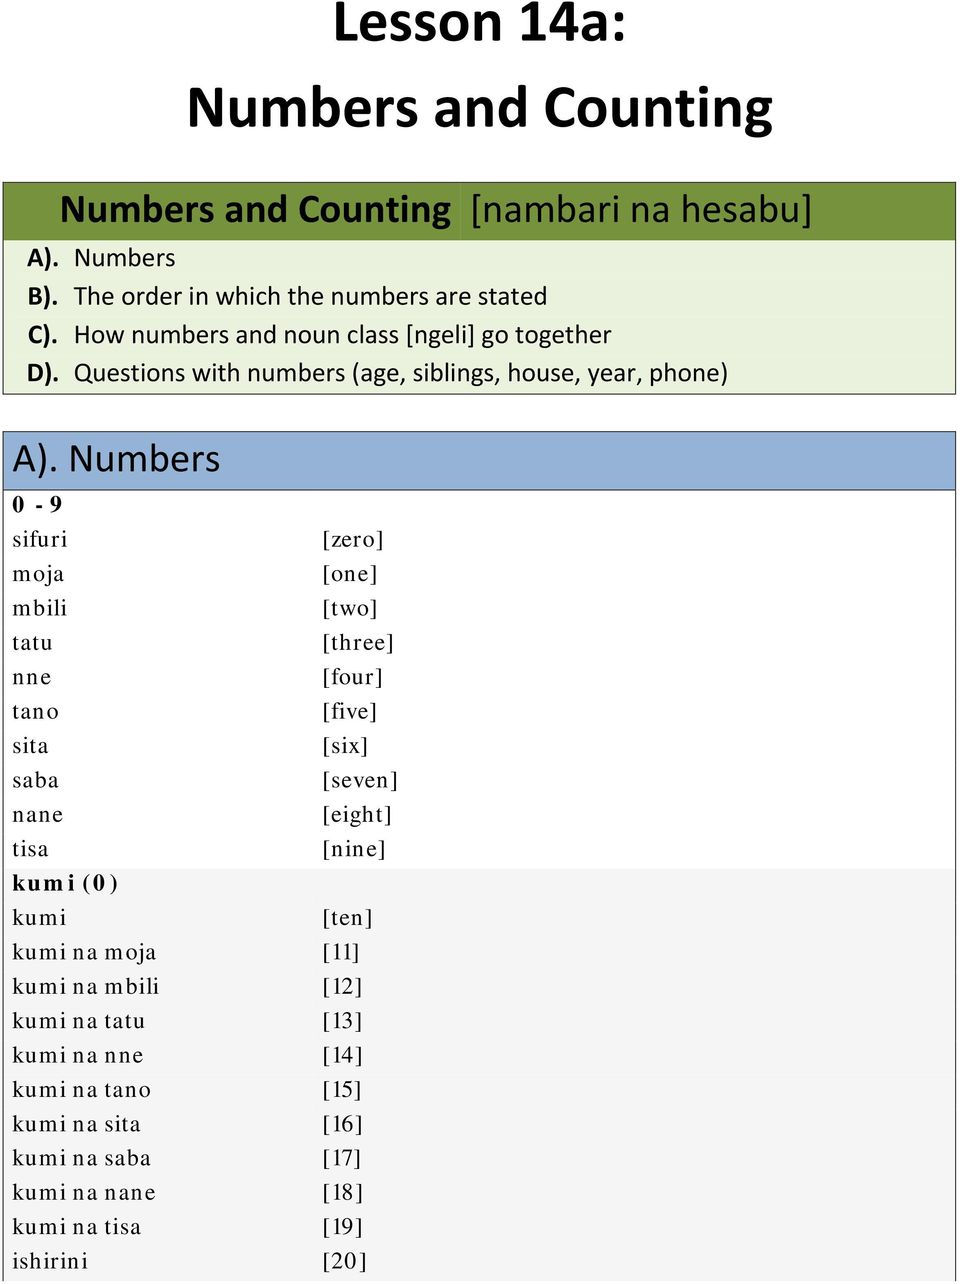 Numbers 0-9 sifuri moja mbili tatu nne tano sita saba nane tisa kumi (0) kumi [zero] [one] [two] [three] [four] [five] [six] [seven] [eight]